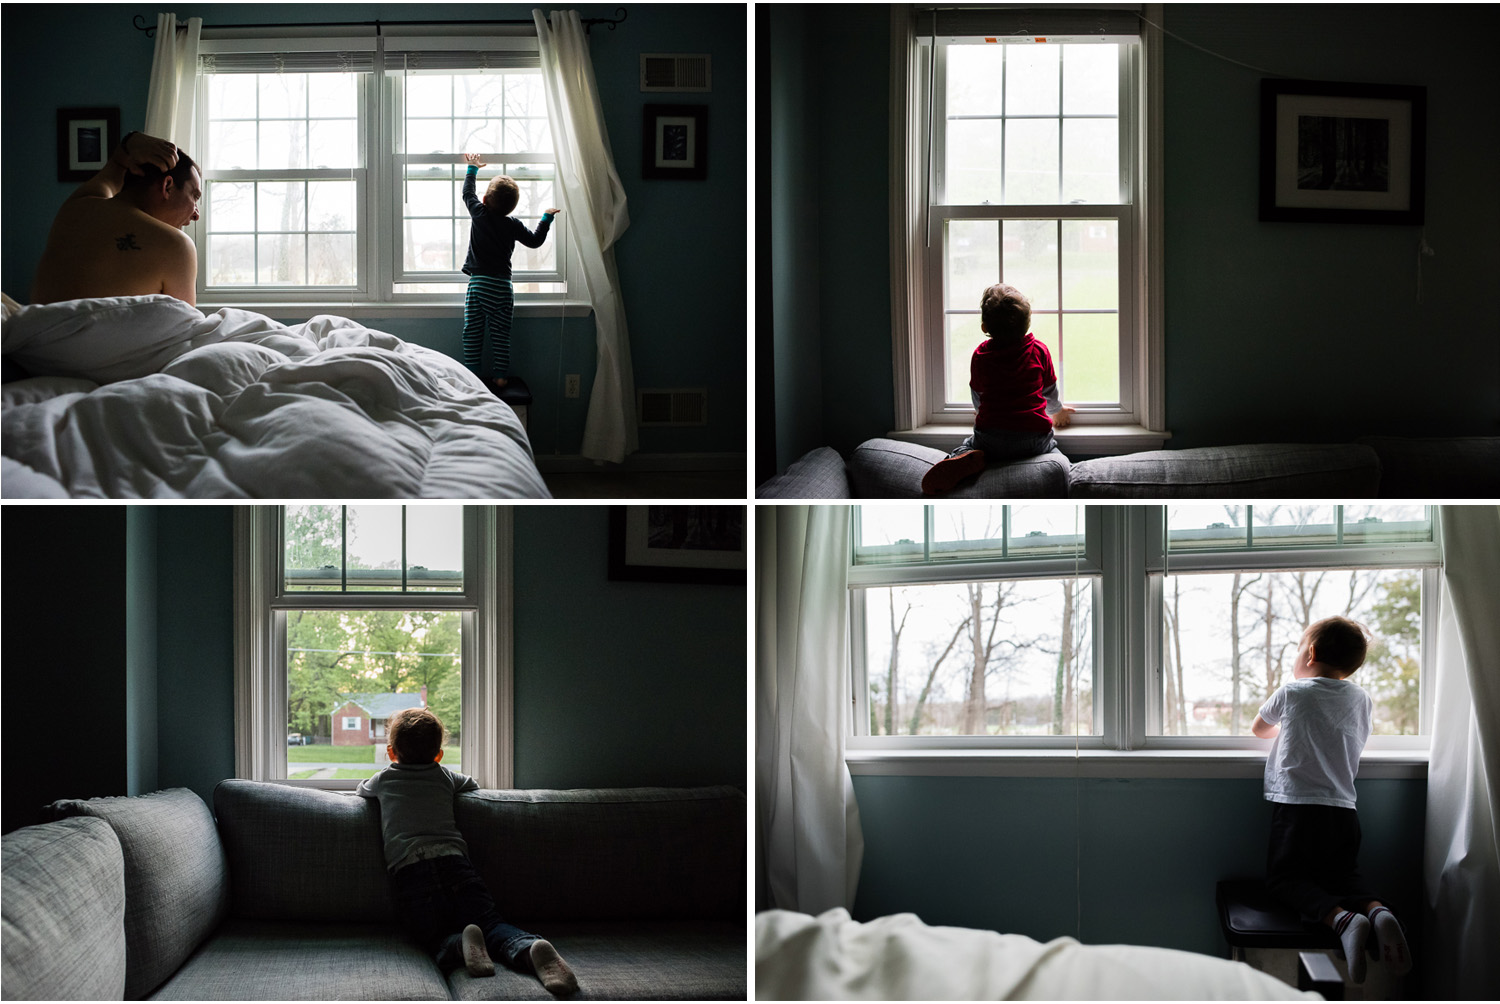 Windows-and-Window-Light-Photography-Series-by-Photographer-Nicole-Sanchez-2